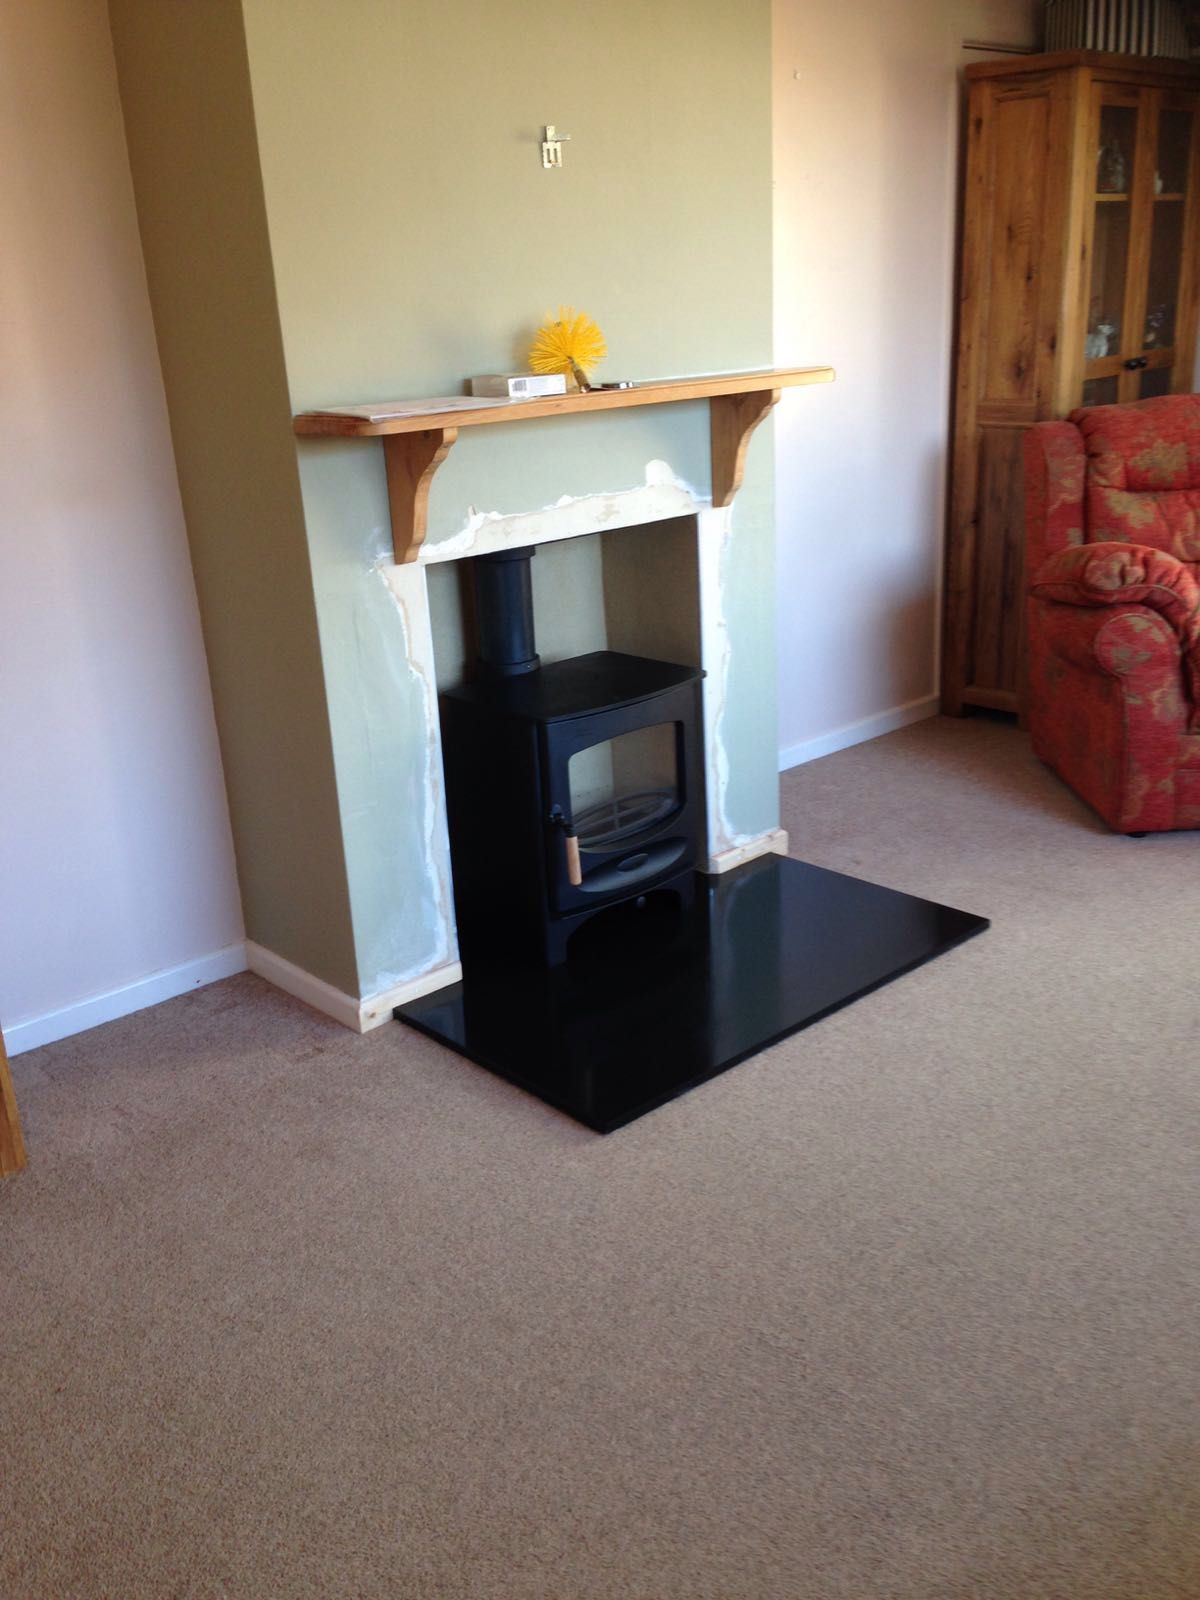 charnwood c5 on smart granite hearth installed by one of six teams